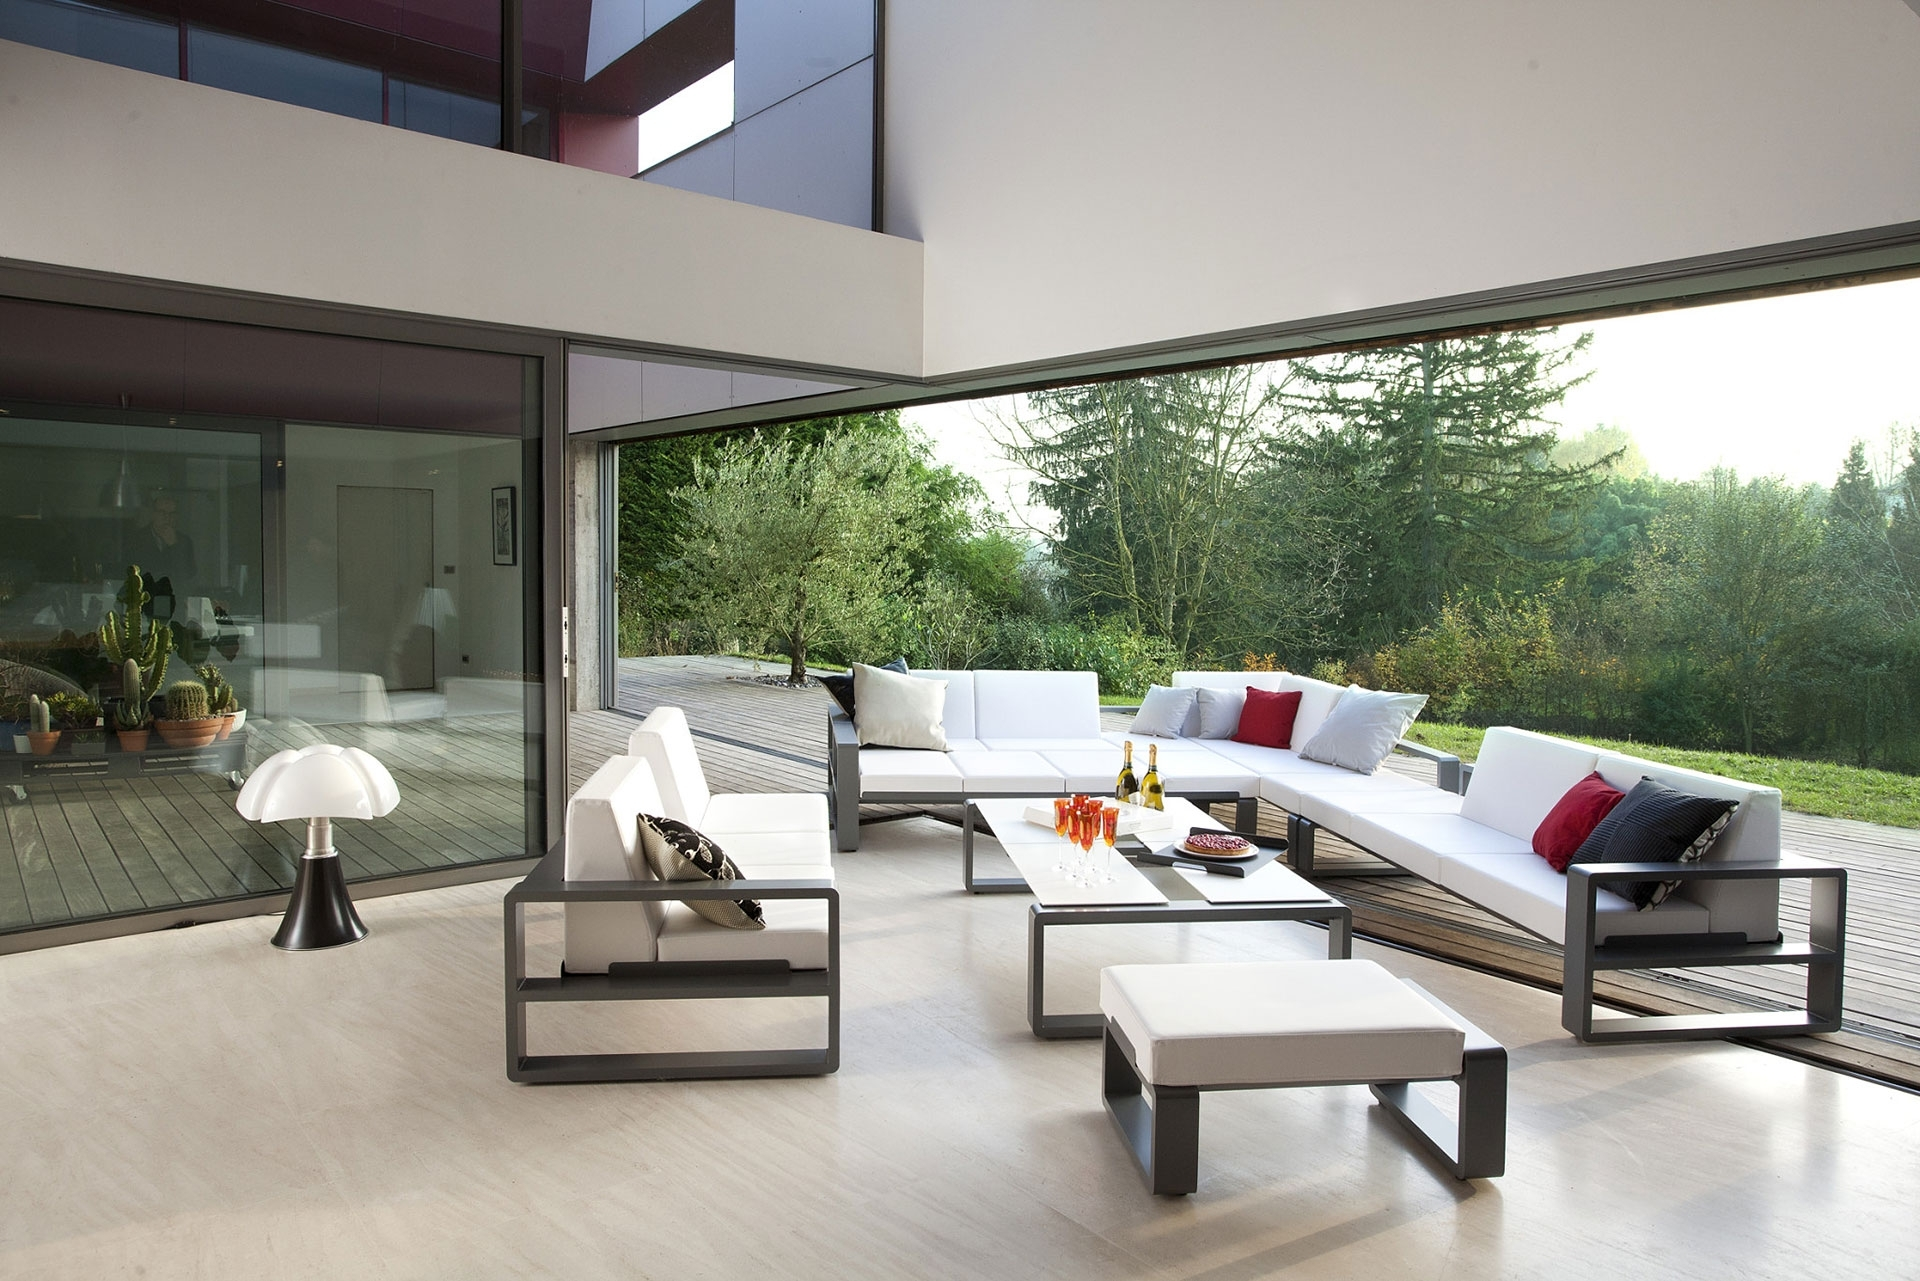 Image of: Contemporary Outdoor Furniture Style Home Design Classy Simple In Throughout Outdoor Contemporary Furniture Wooden Outdoor Contemporary Furniture